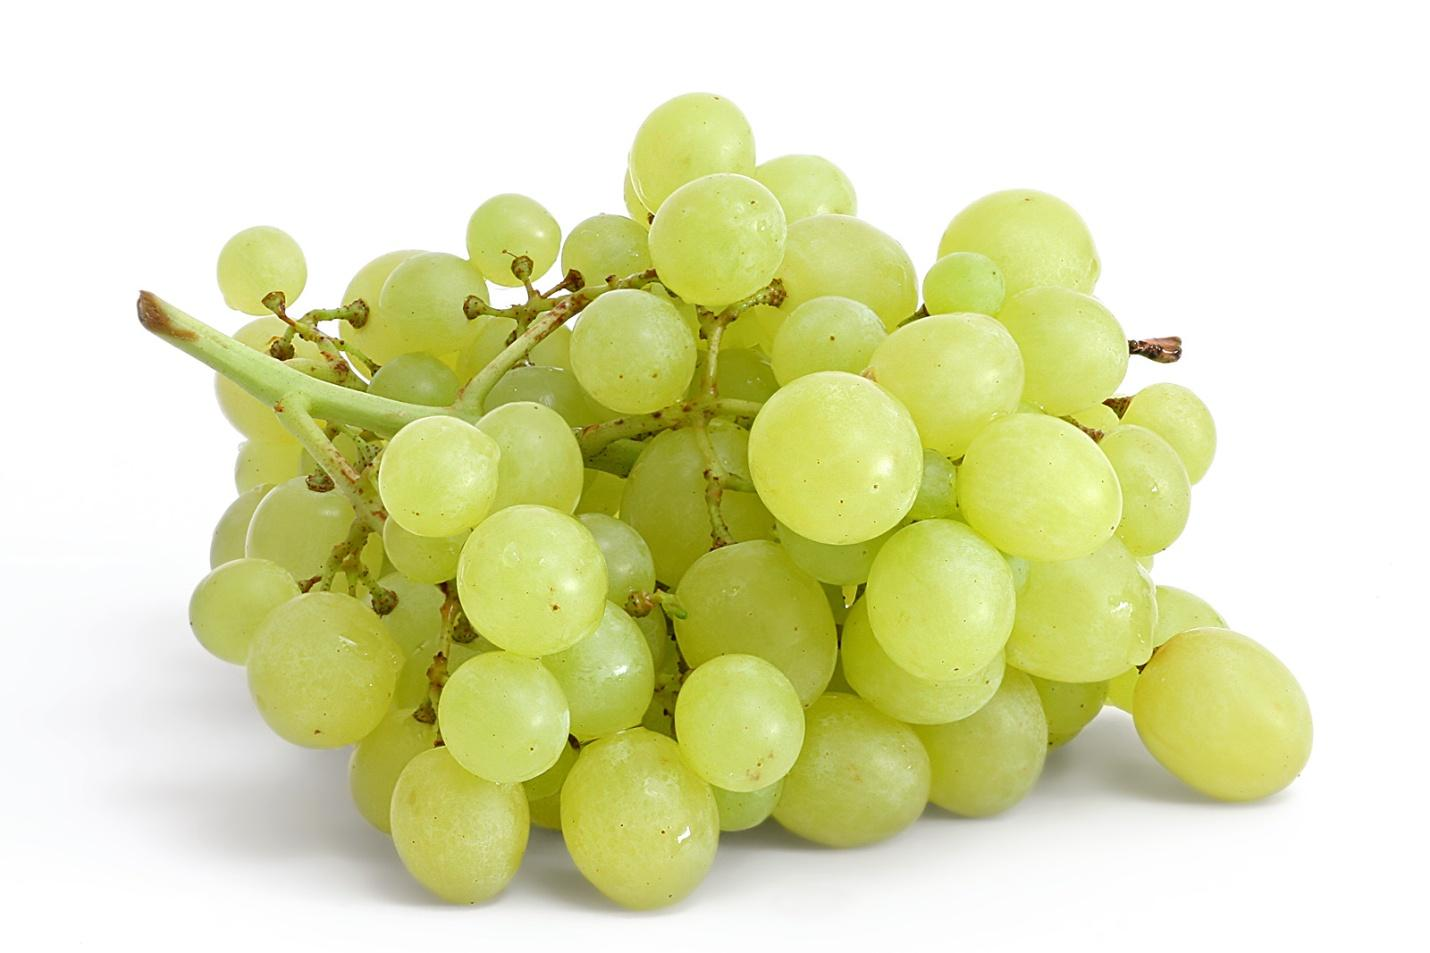 C:\Users\TOSHIBA\Desktop\Table_grapes_on_white.jpg